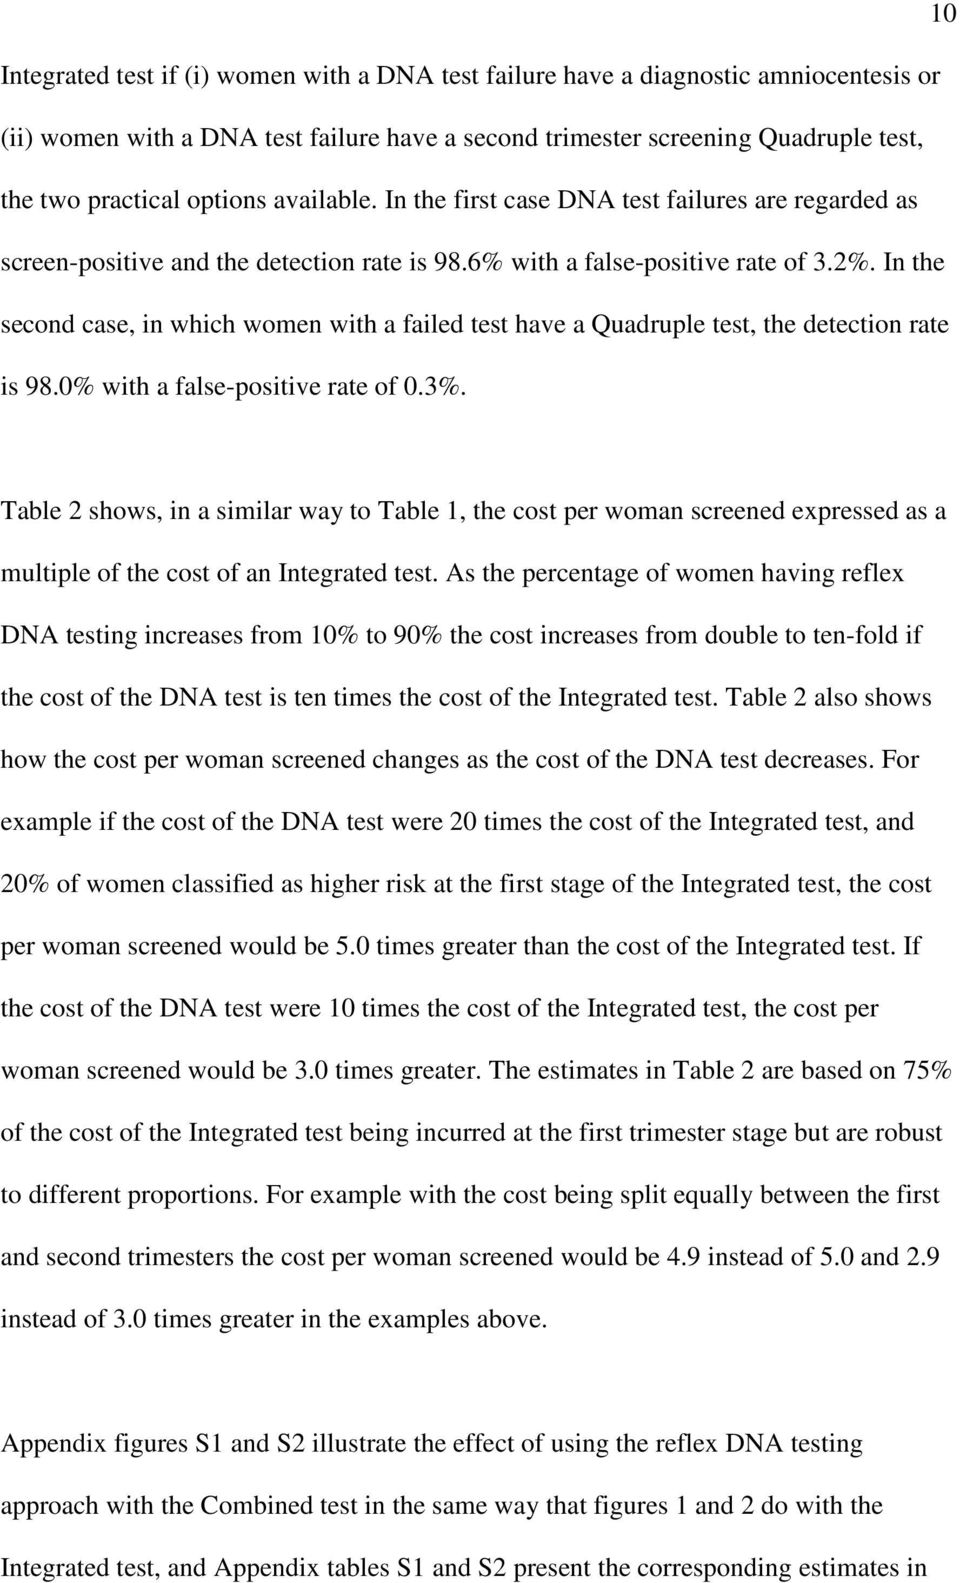 In the second case, in which women with a failed test have a Quadruple test, the detection rate is 98.0% with a false-positive rate of 0.3%.